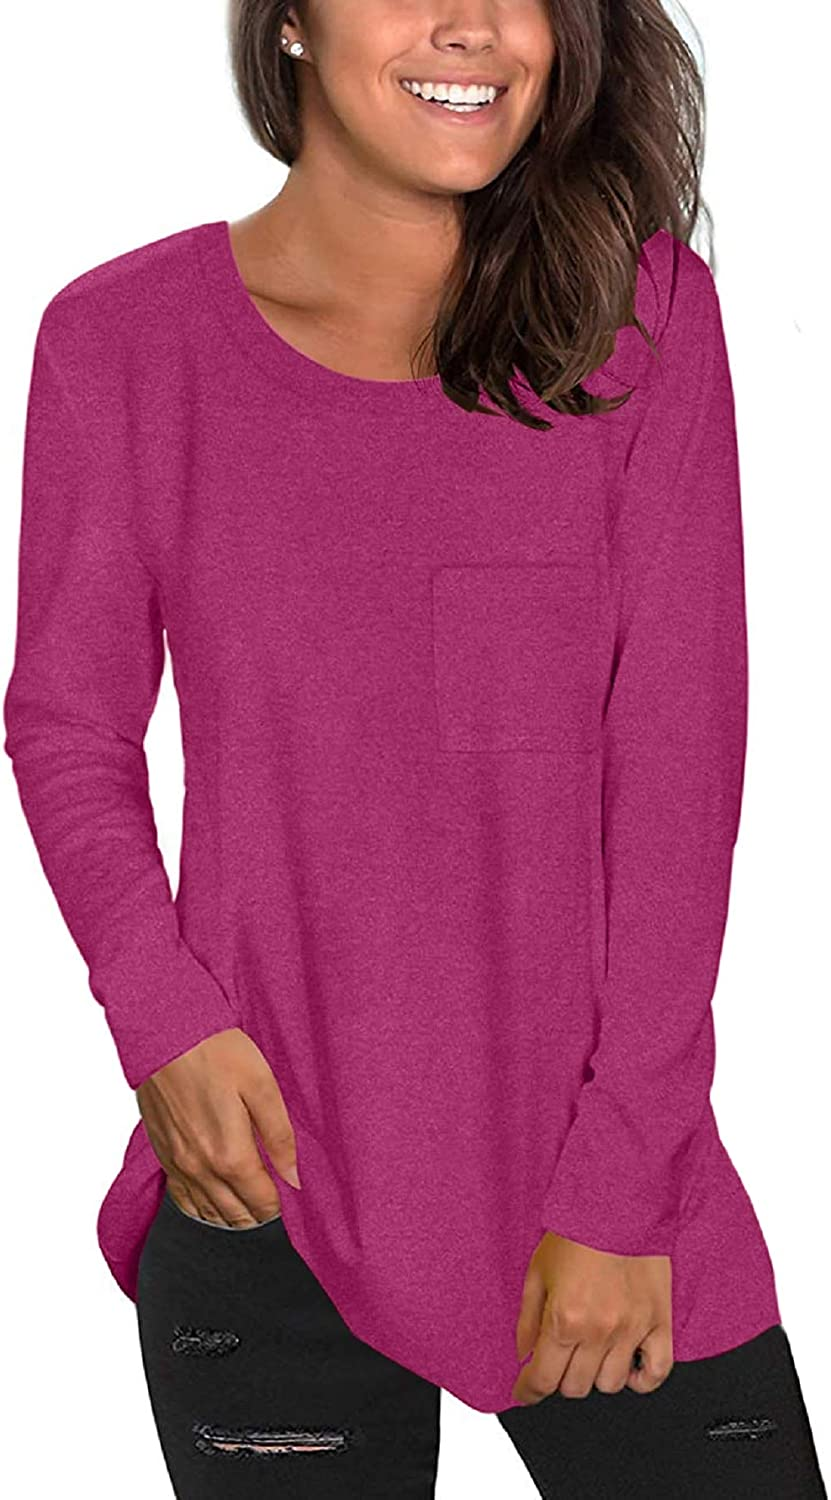 KISSMODA Womens Casual Long Sleeve Crew Neck Solid Color Daily T-Shirt